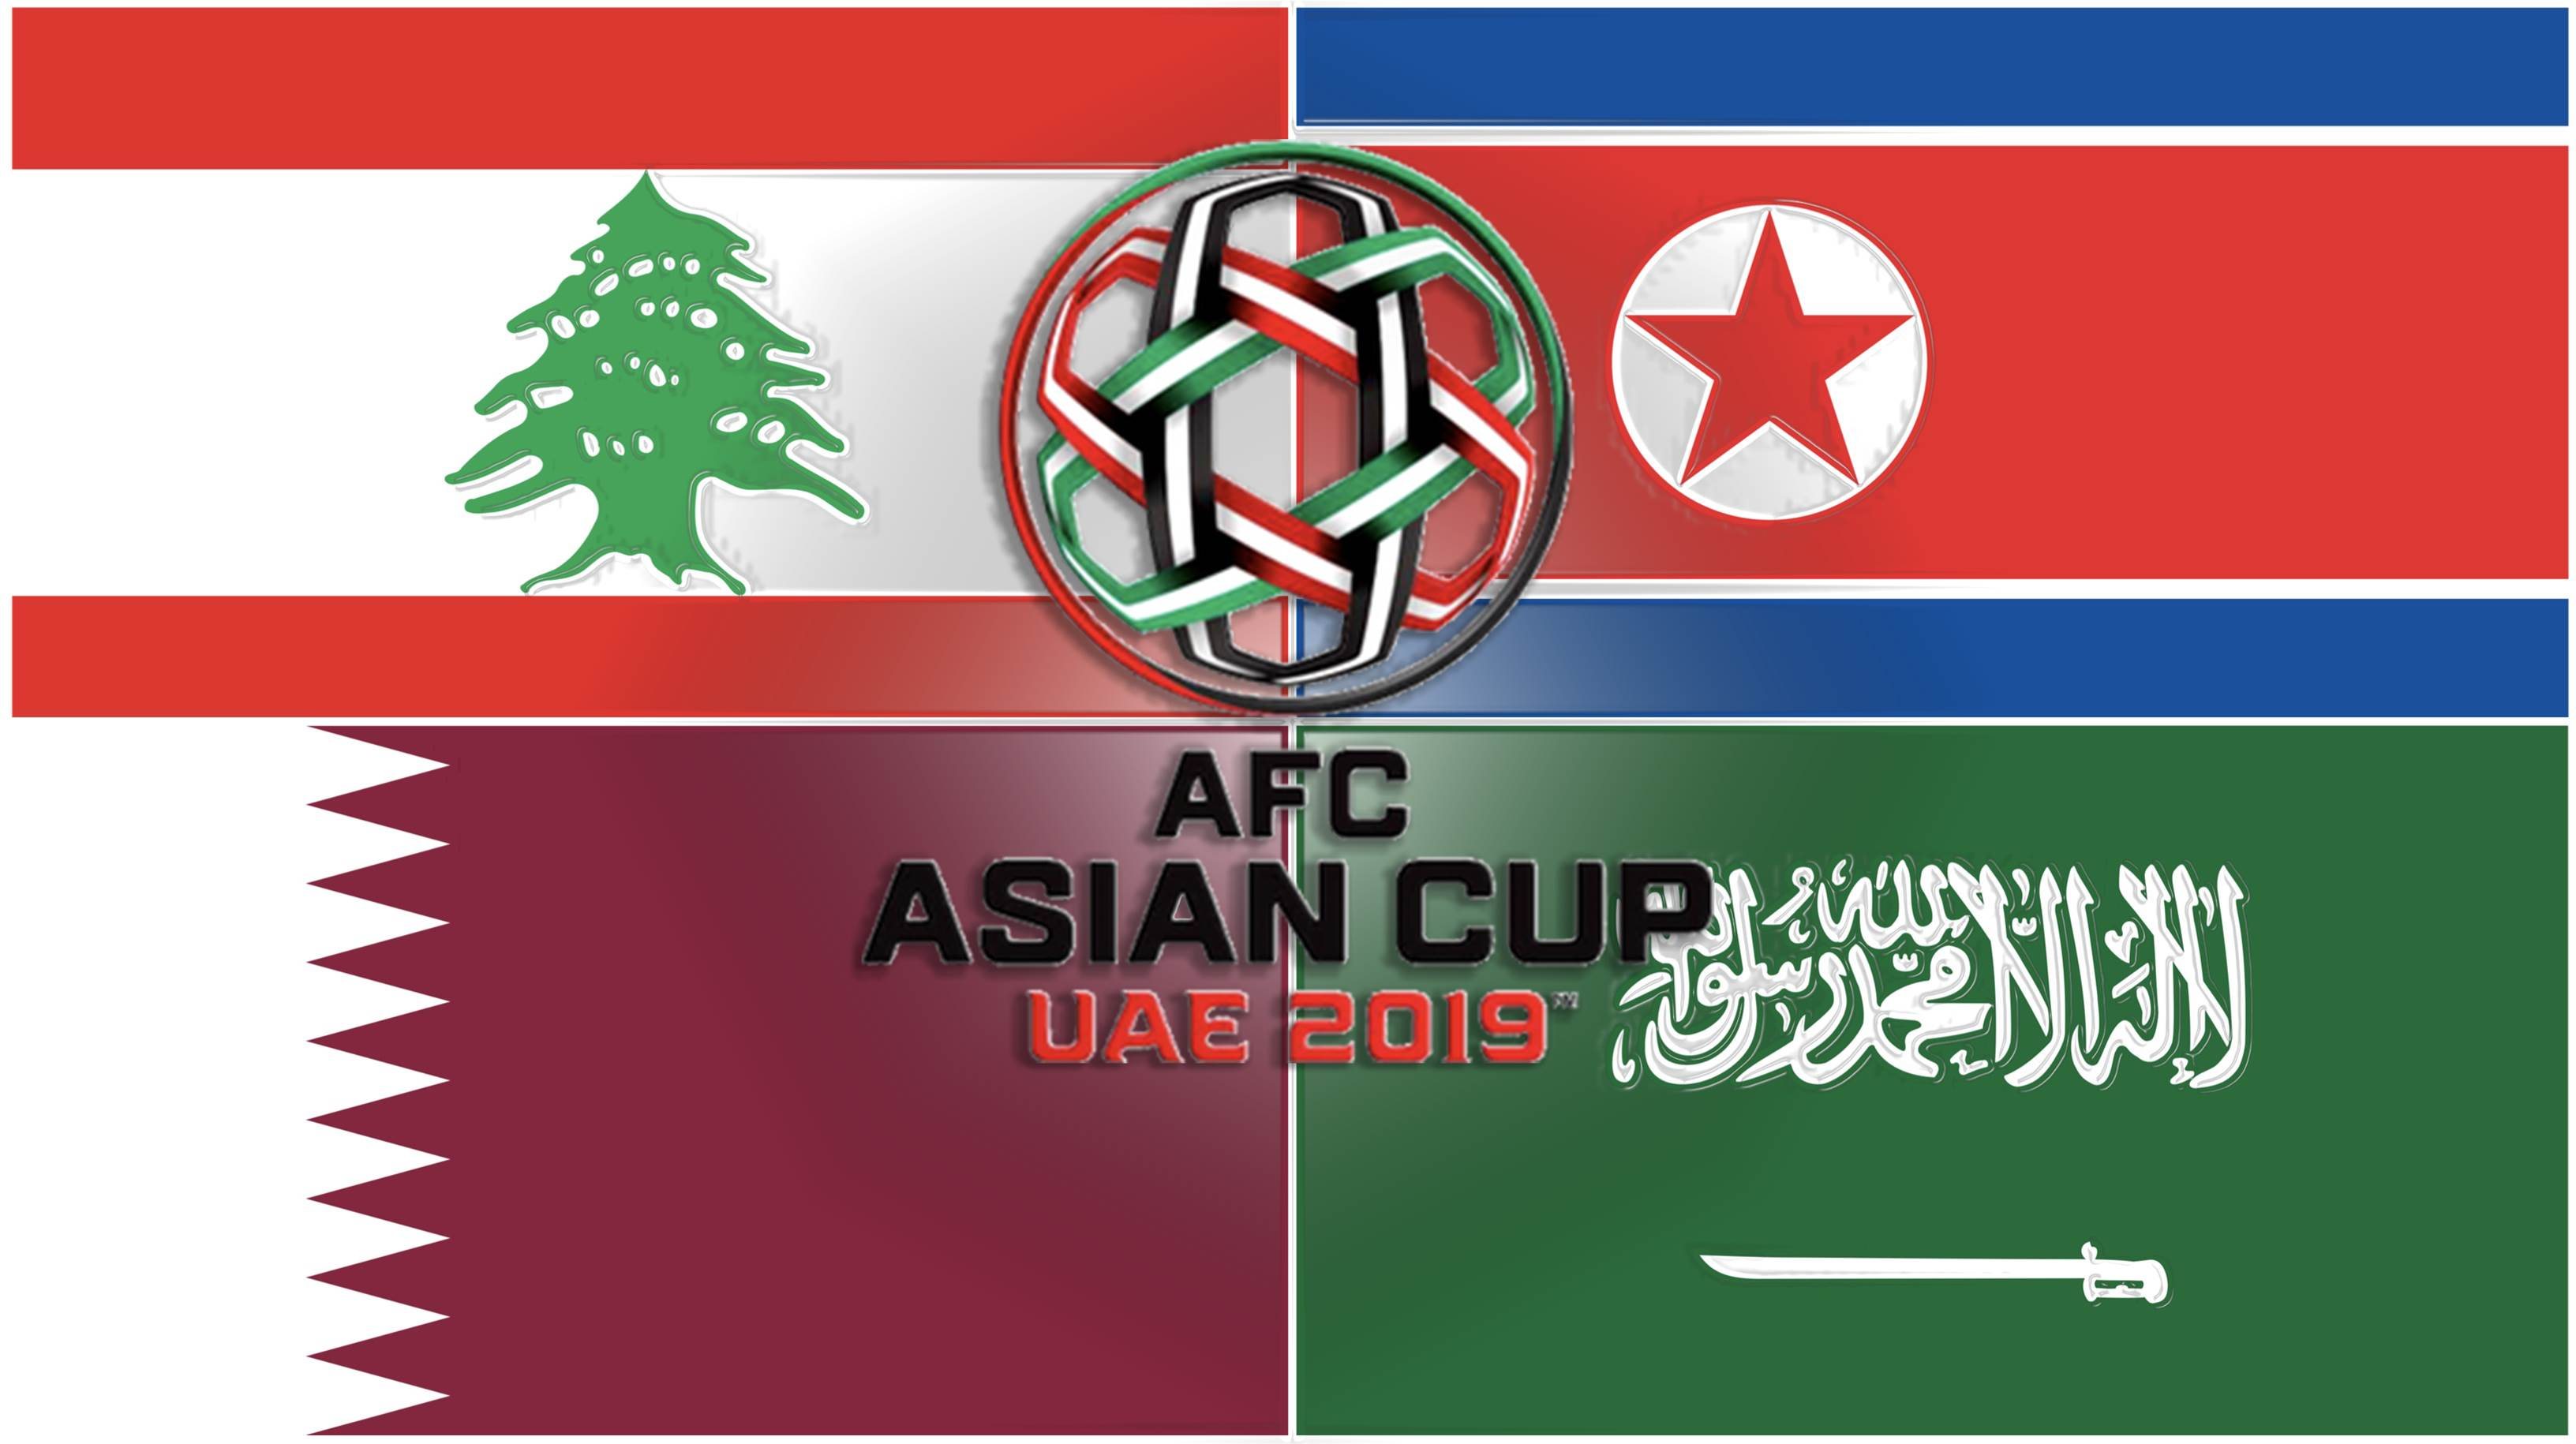 ASIAN CUP 2019 PREVIEW: EVERYTHING YOU NEED TO KNOW ABOUT GROUP E